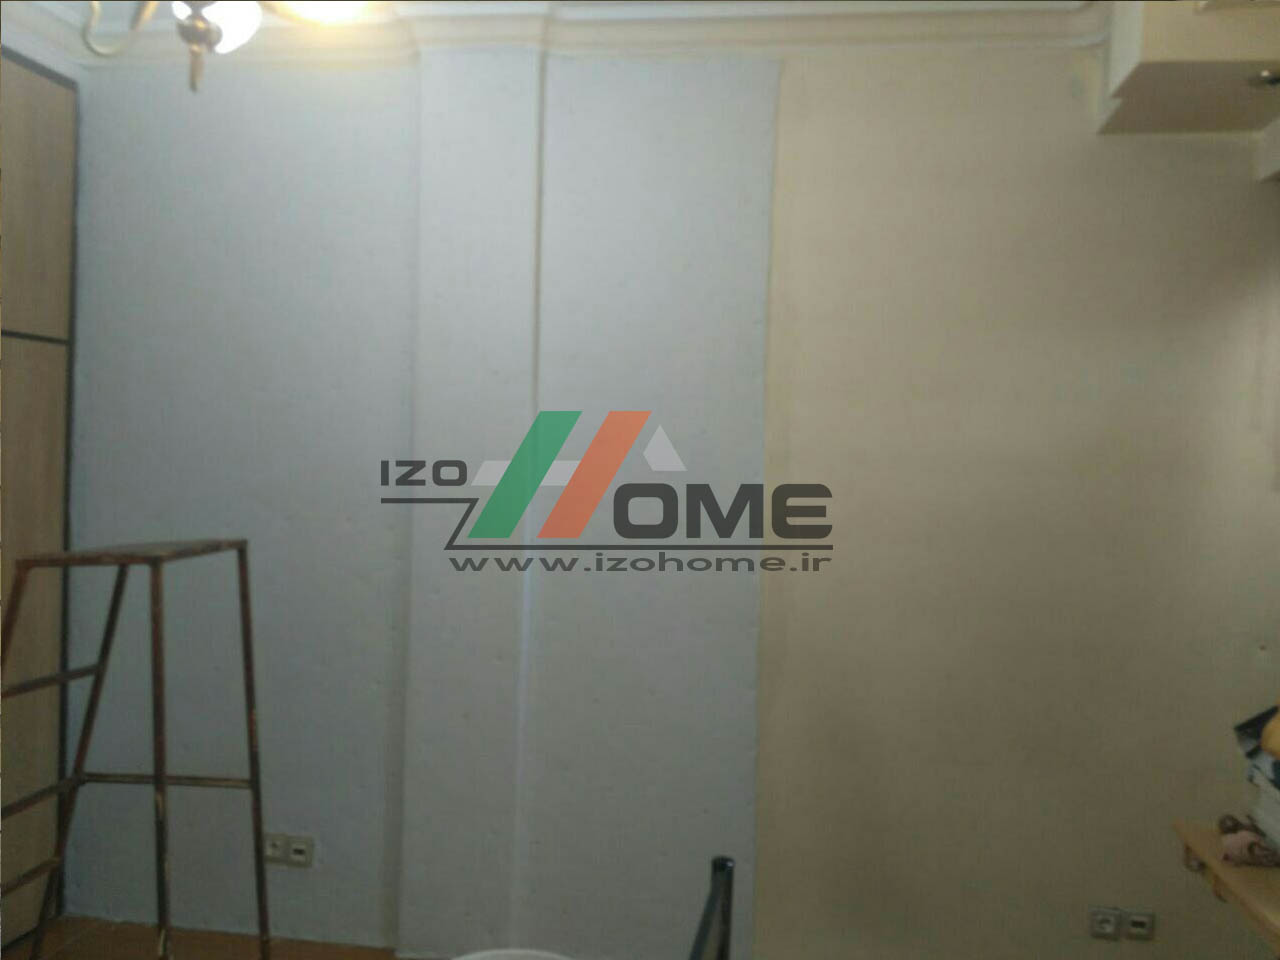 izohome23 1 - Thermal insulation for the wall